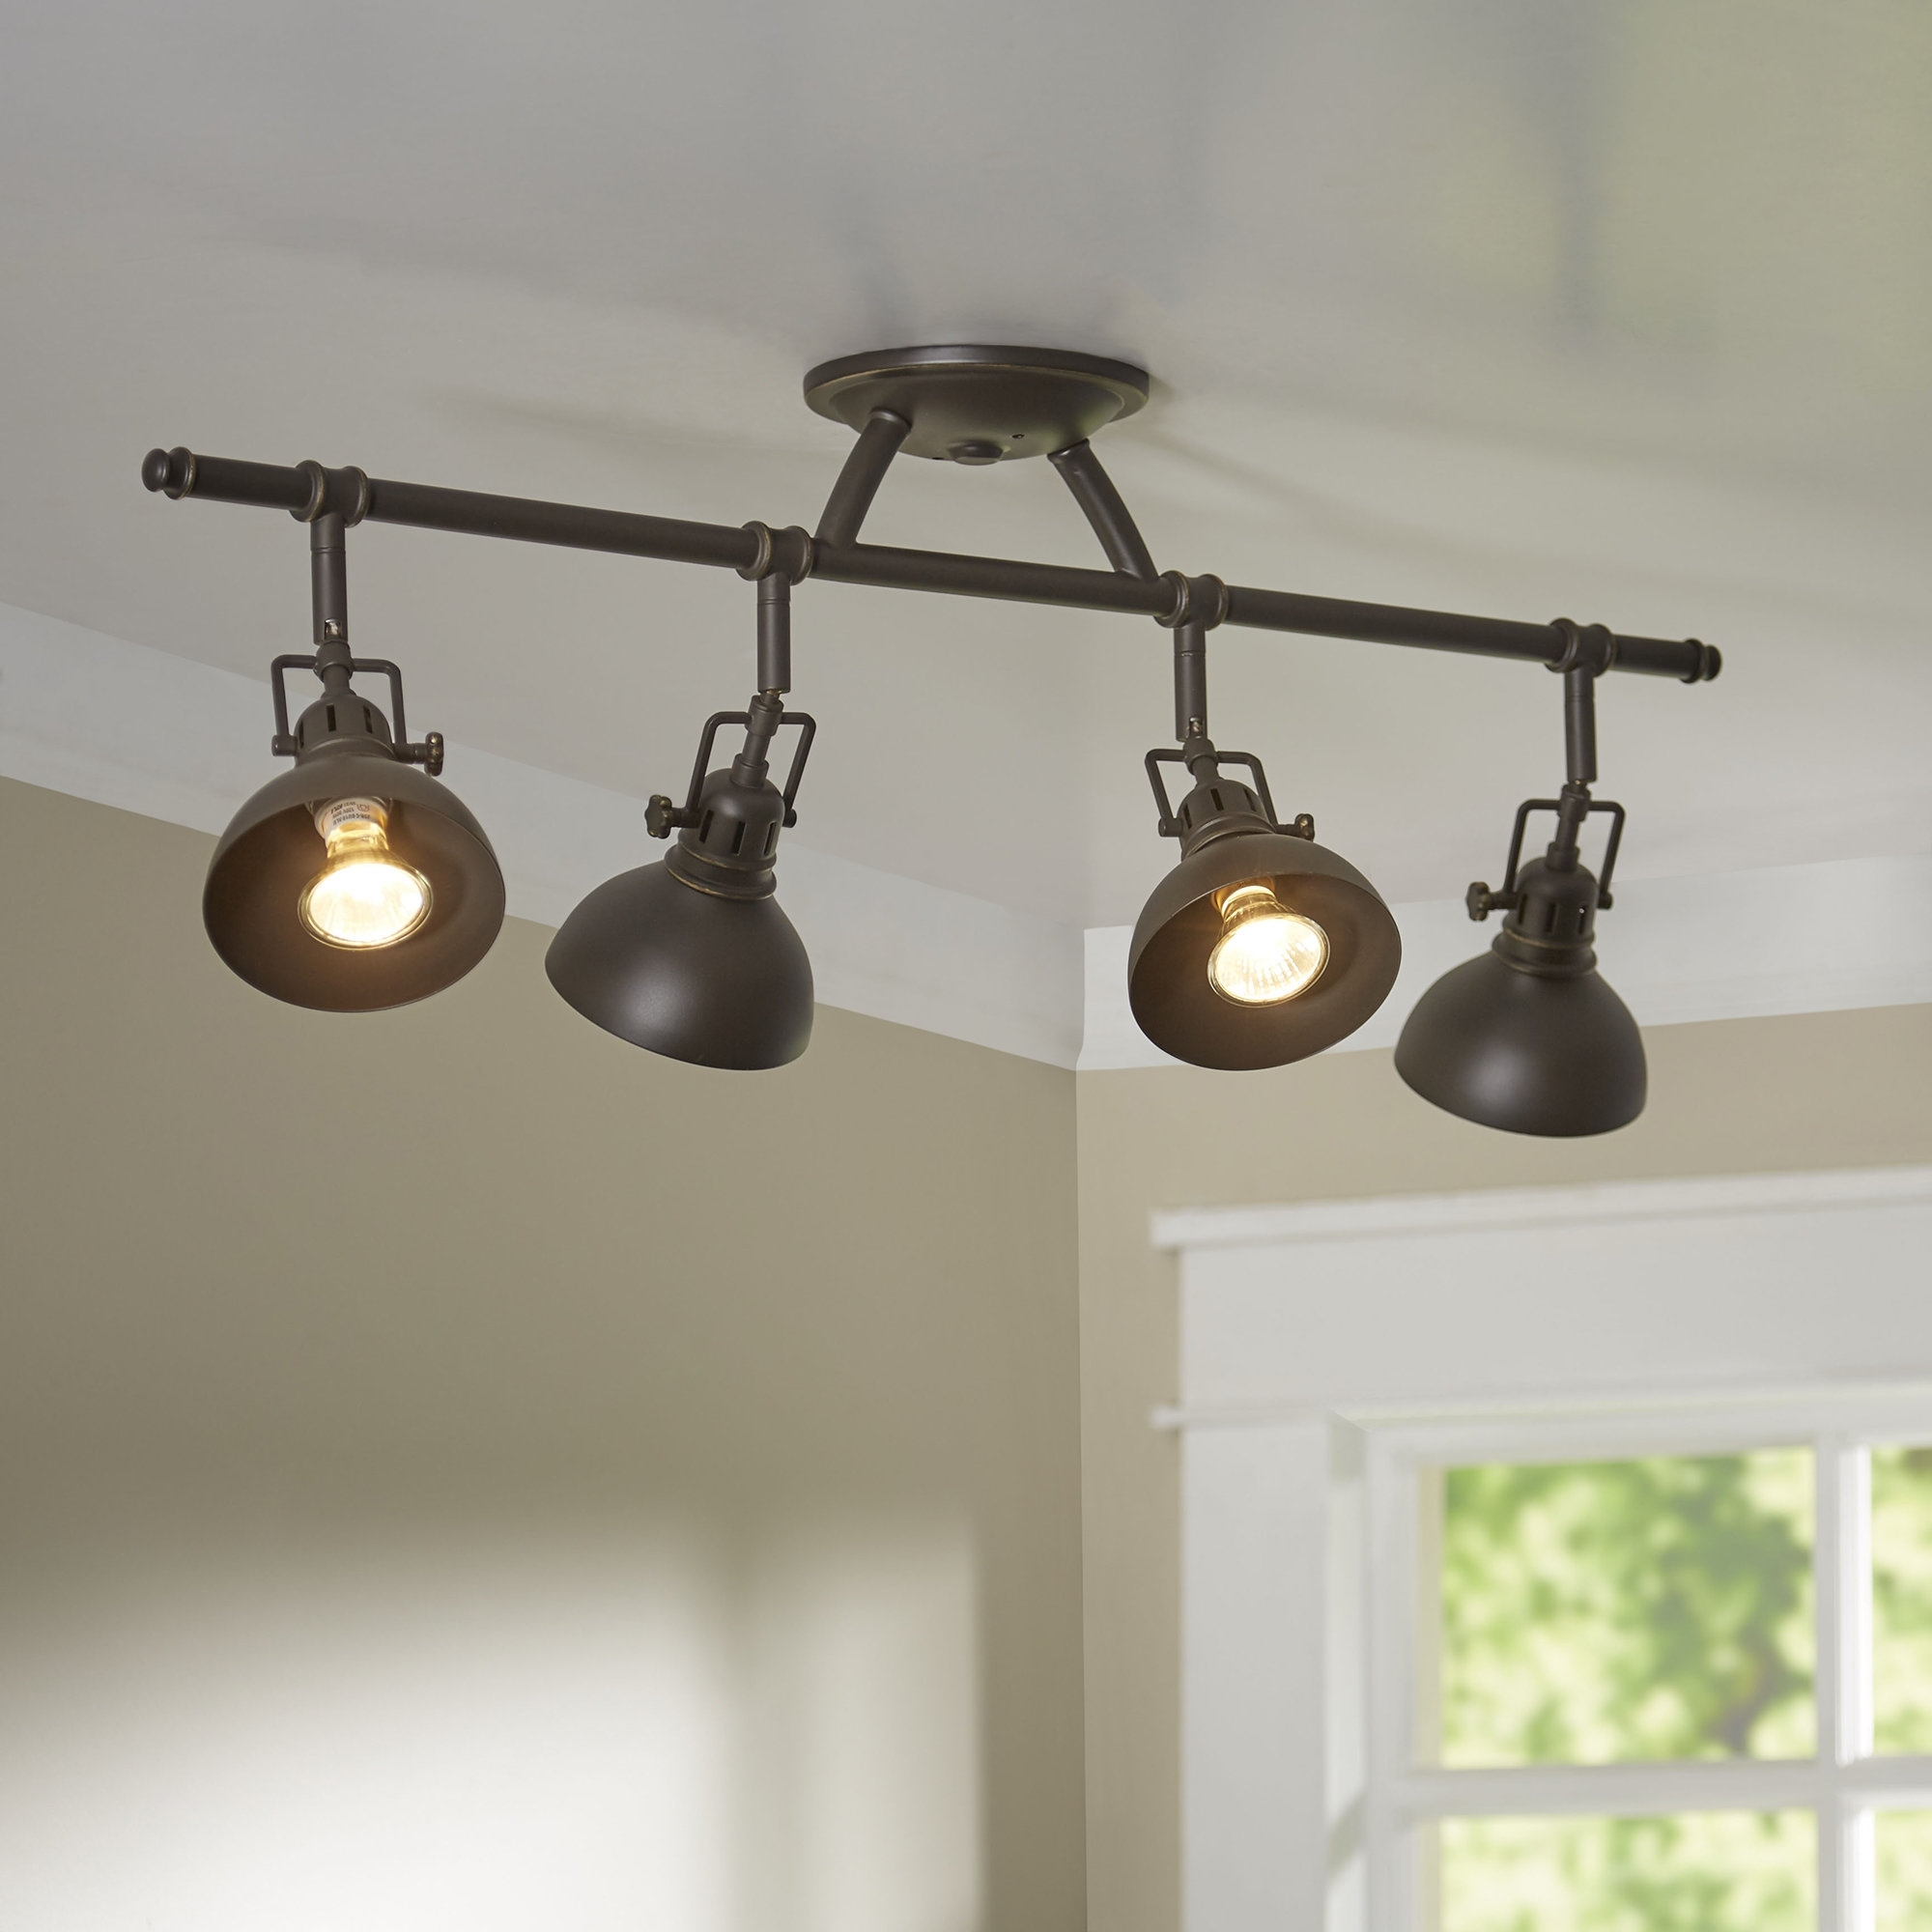 Most Popular Contemporary Rustic Outdoor Lighting At Wayfair Intended For Track Lighting You'll Love (View 14 of 20)